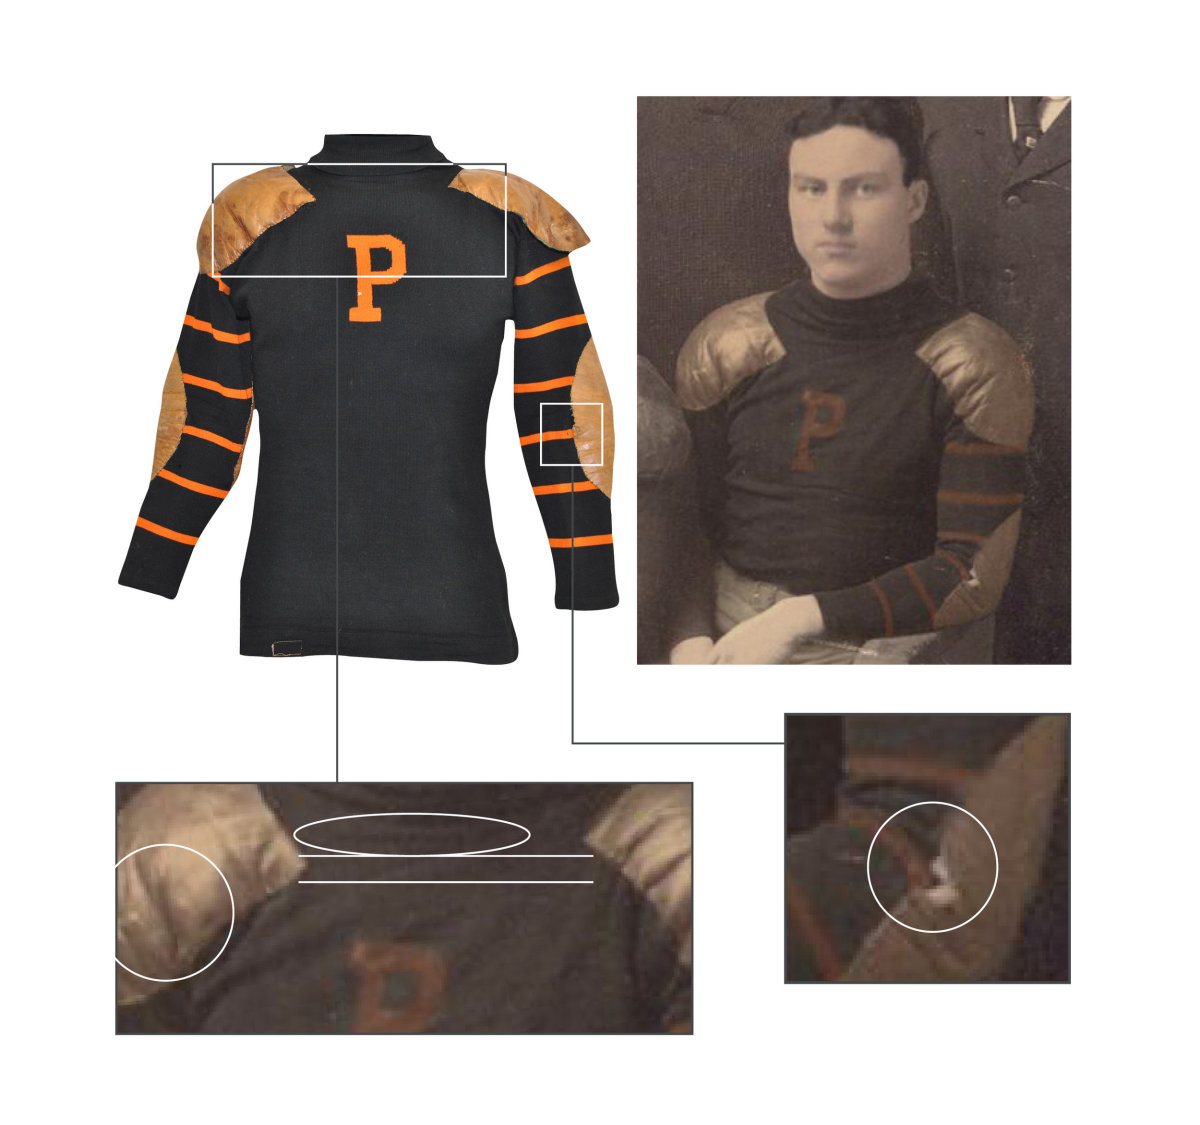 A 1905 Princeton University football jersey, and team and player's photo used to help authenticate it. Photo: Photo-Match.com